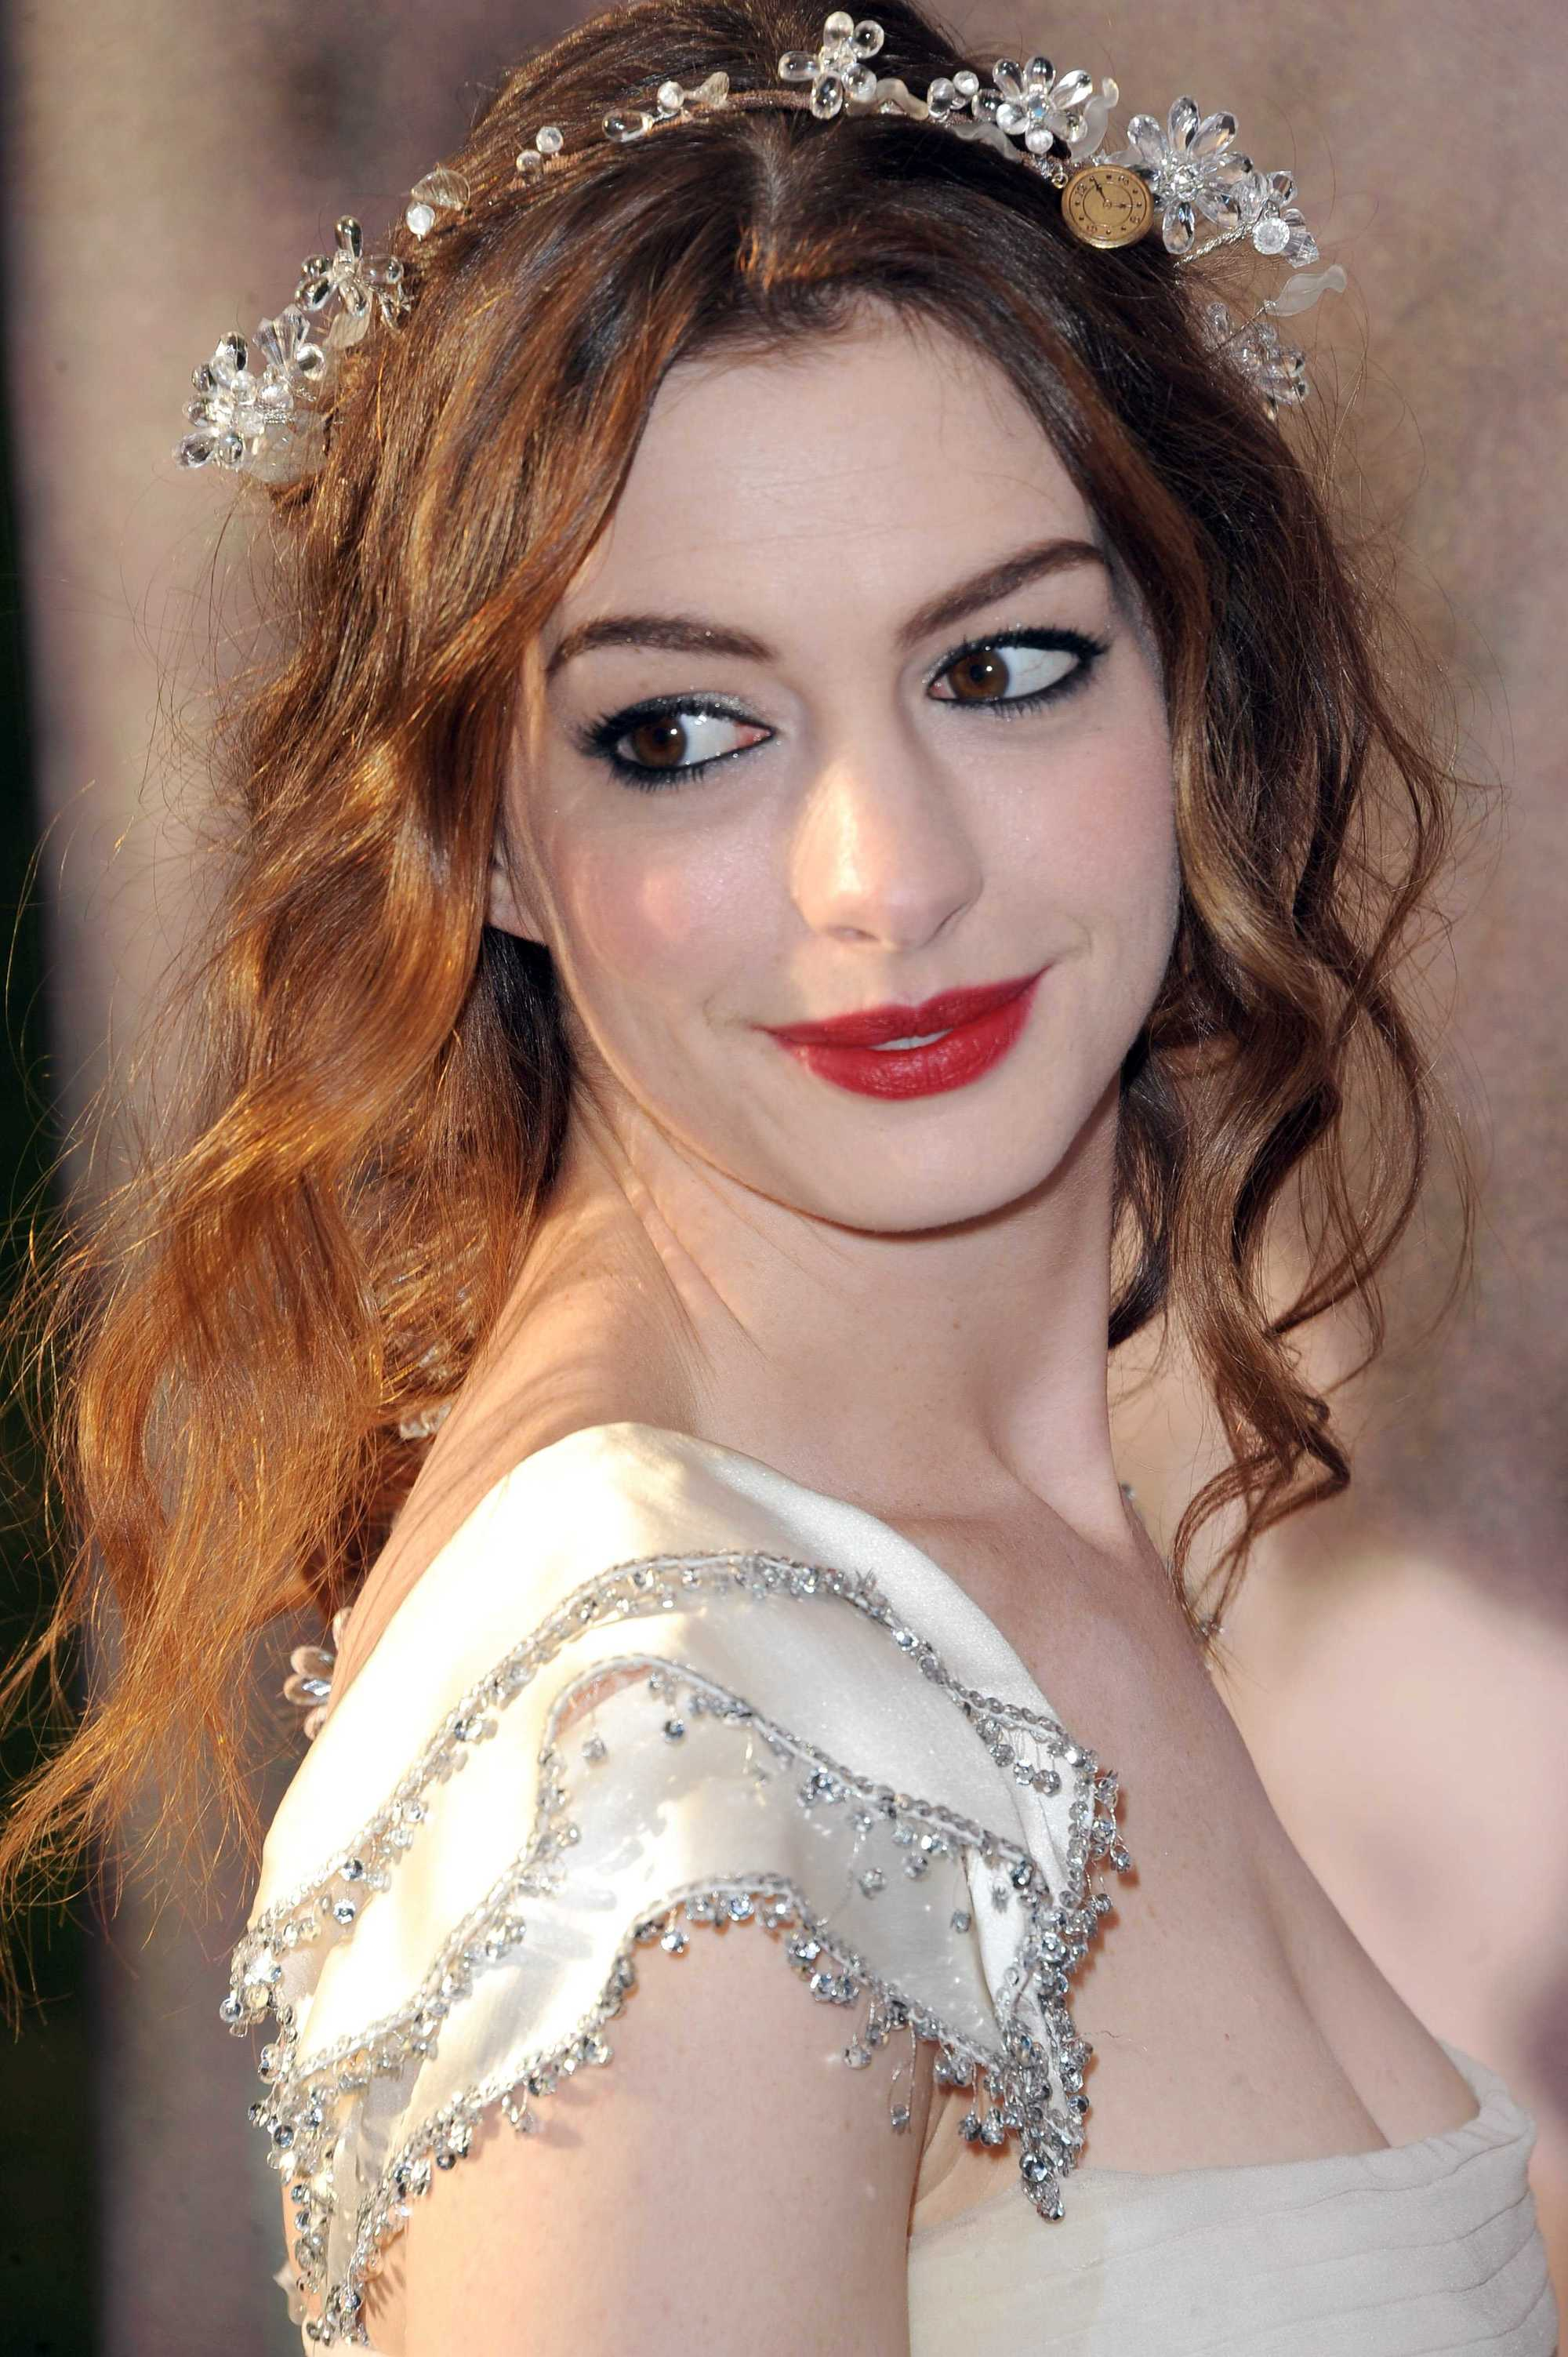 Anne Hathaway with loose updo with flower crown headband